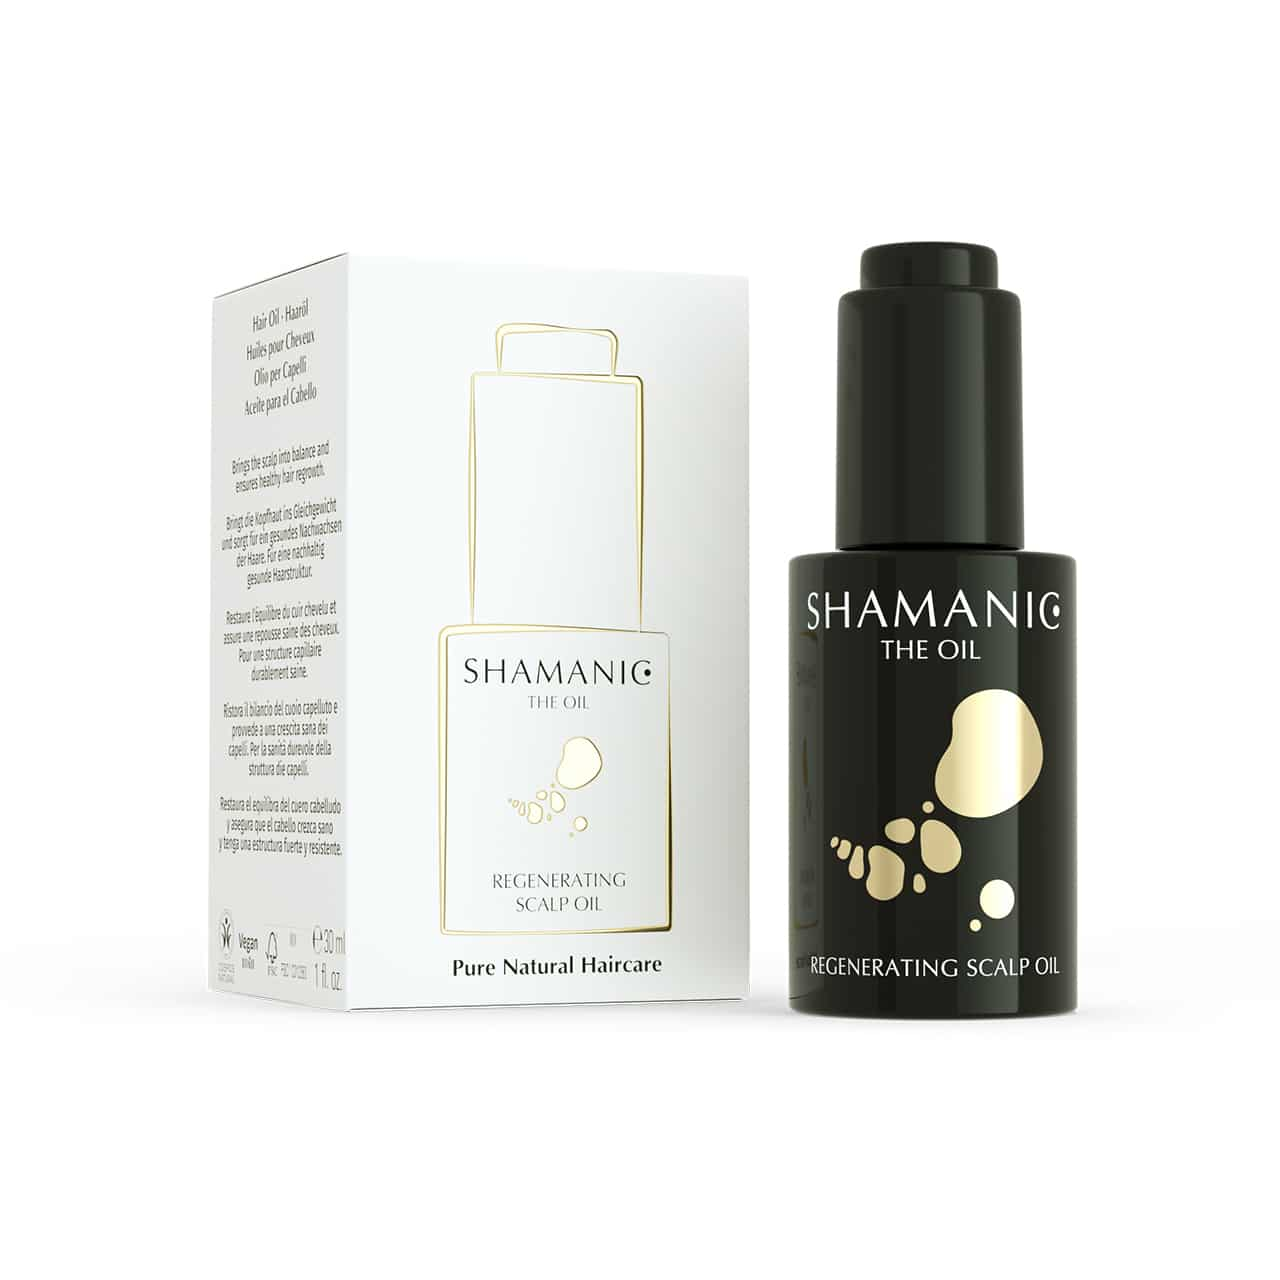 shamanic regenerating scalp oil